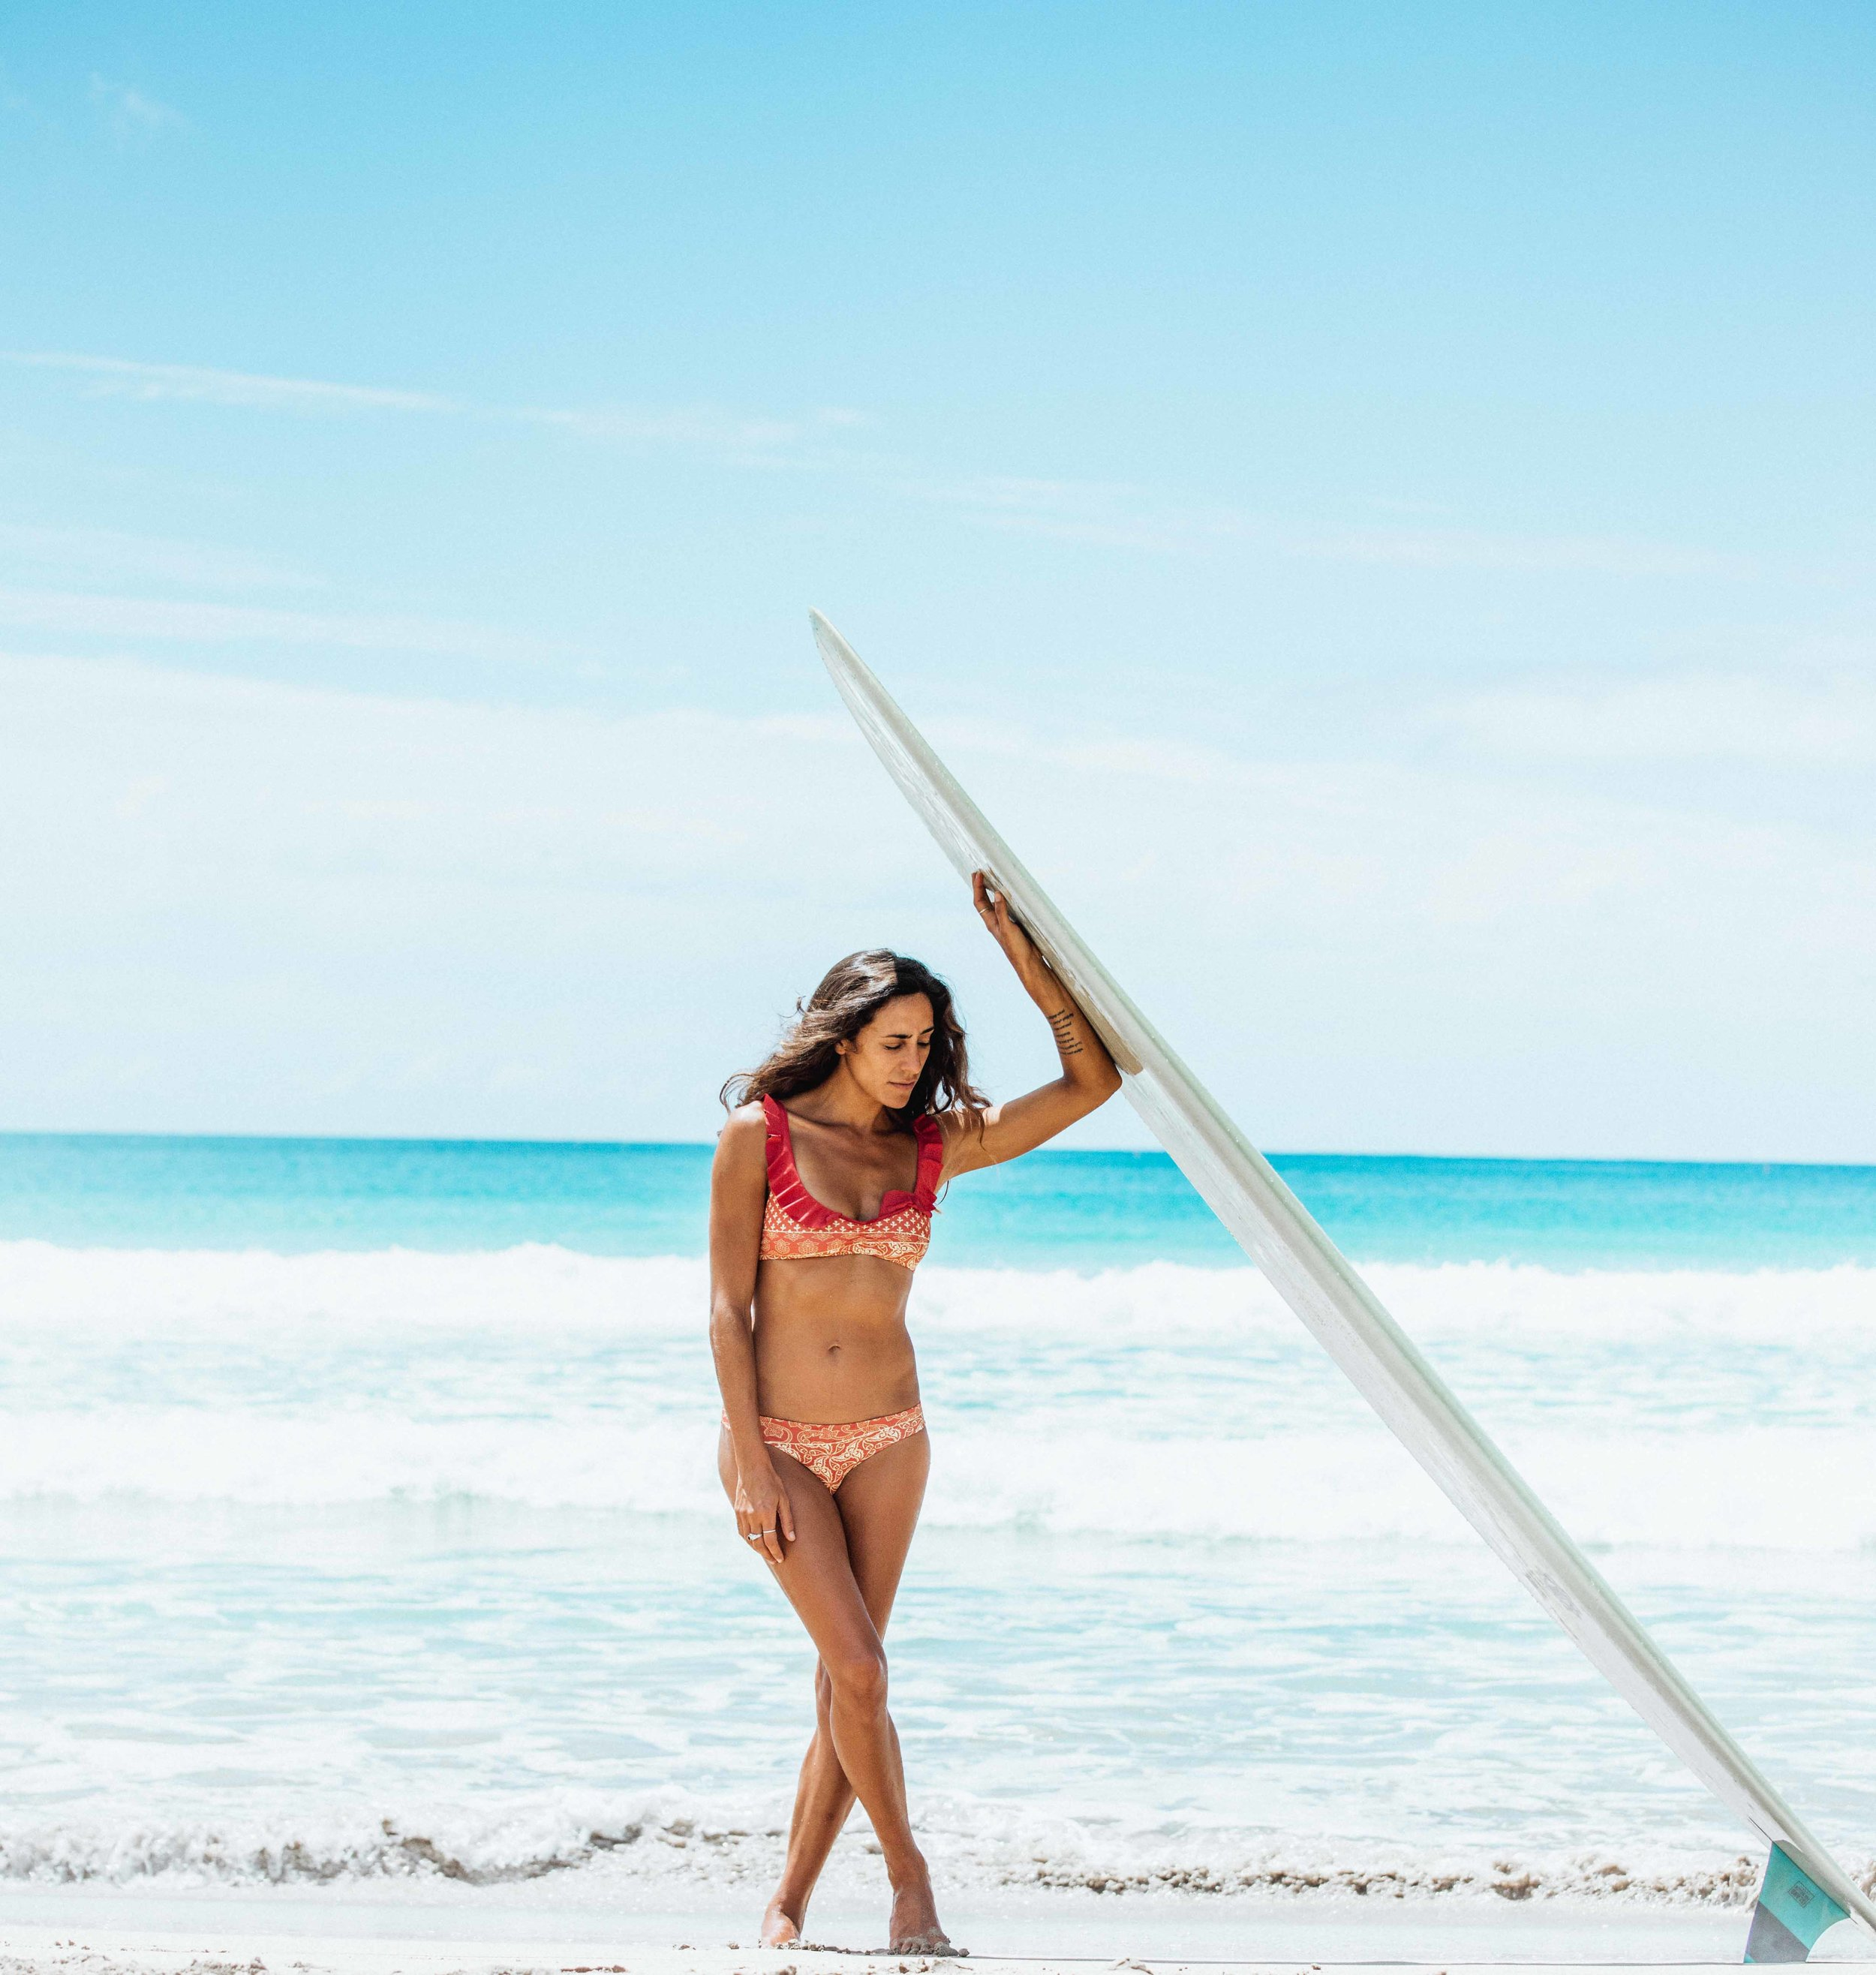 I met up with the talented Lex Weinstein at one of her favorite secret spots in Kaua'i. Check out the San Lorenzo Bikinis blog to find out how this surf goddess mixes art, farming and travel into her daily life! http://www.sanlorenzobikinis.com/blog/?p=4252